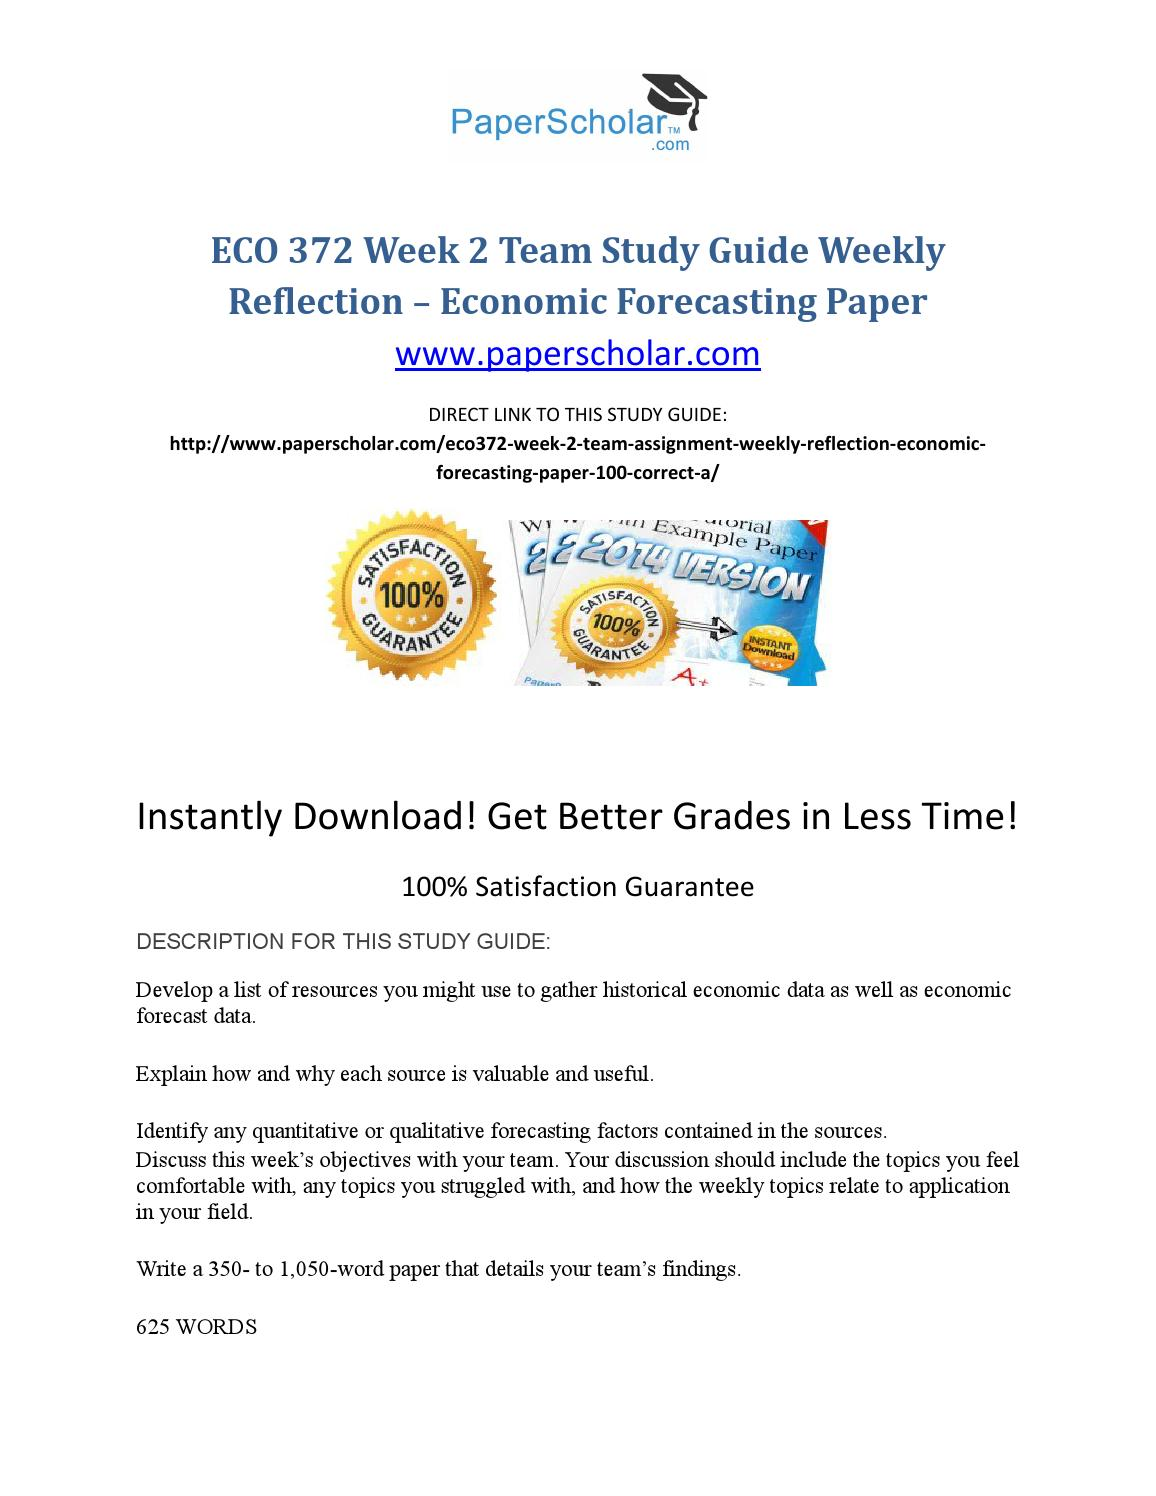 Eco 372 week 2 team study guide weekly reflection – economic forecasting  paper by MAX8 - issuu